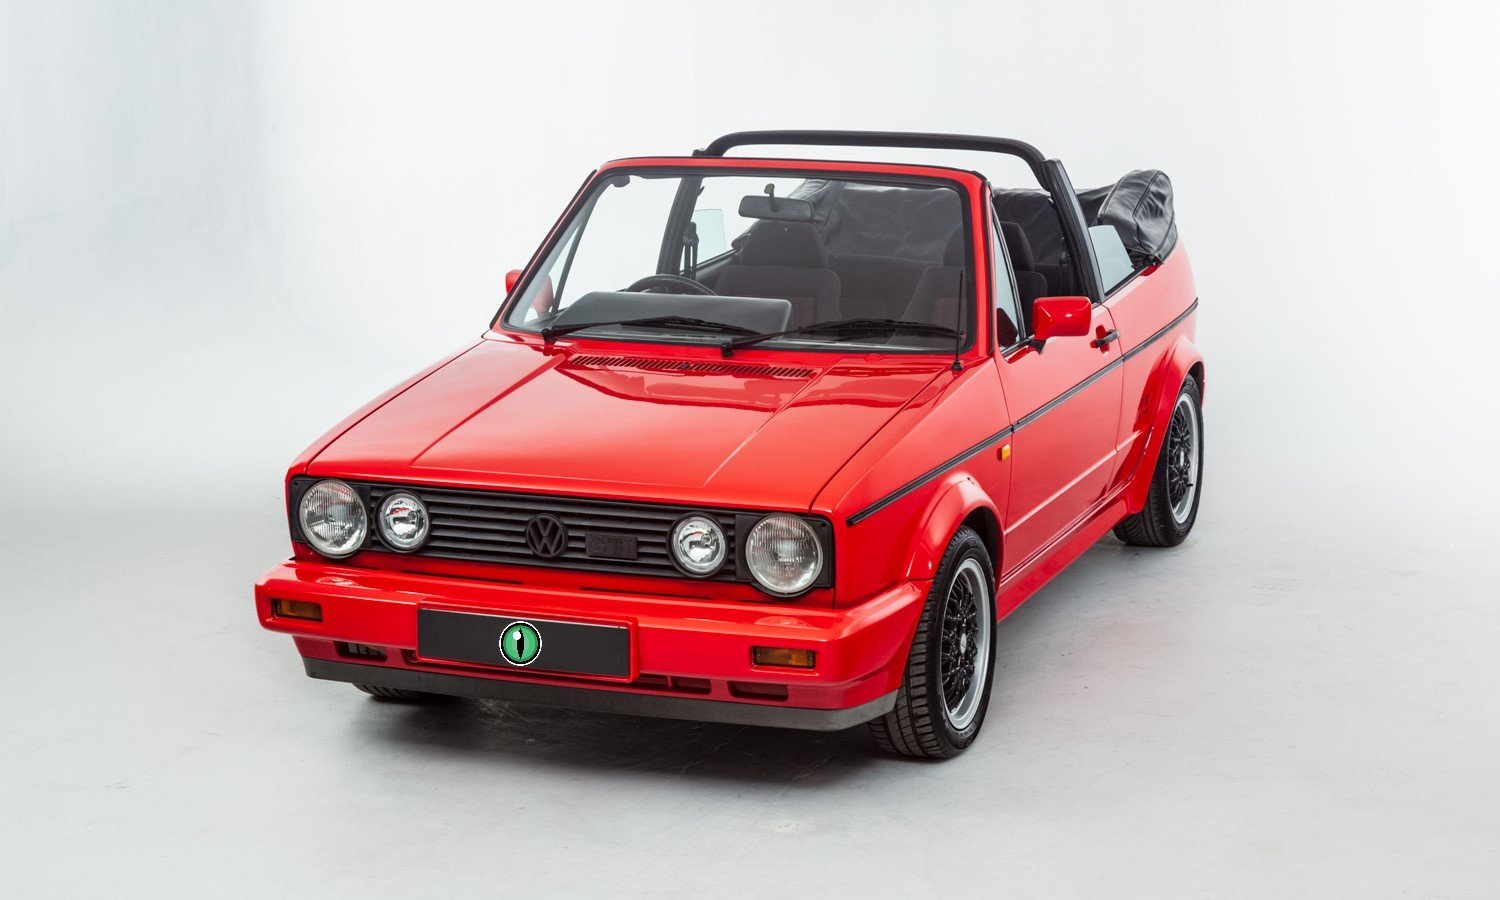 1993 Volkswagen Golf MK1 GTI SPORTLINE - Stunning, Rare For Sale (picture 5 of 6)